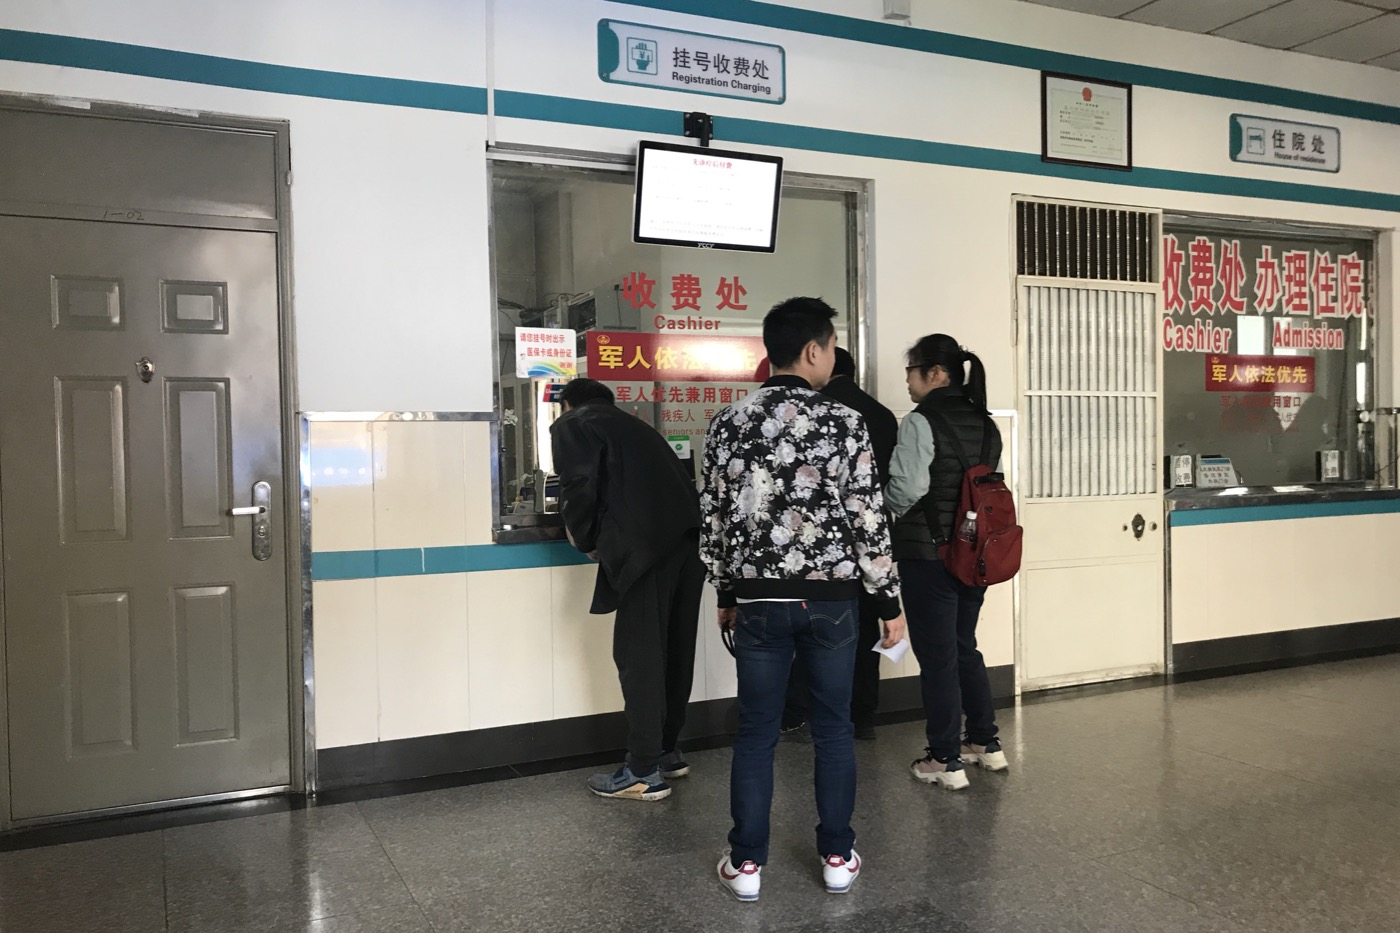 Beijing Hospital. Step 1: Registration